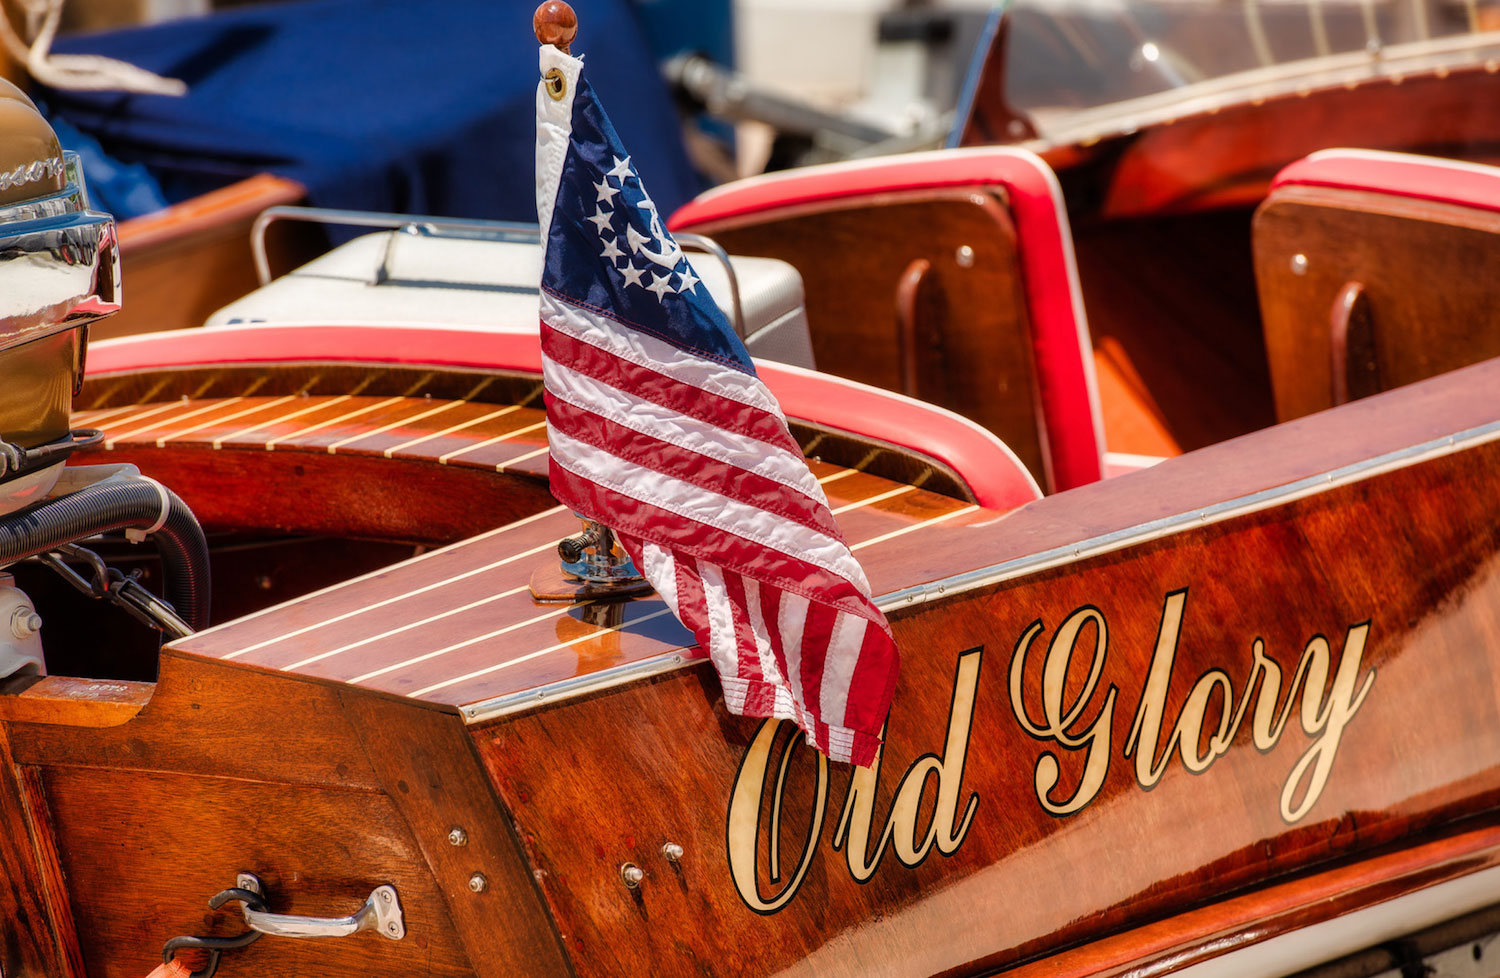 Wooden Boat Festival Old Glory